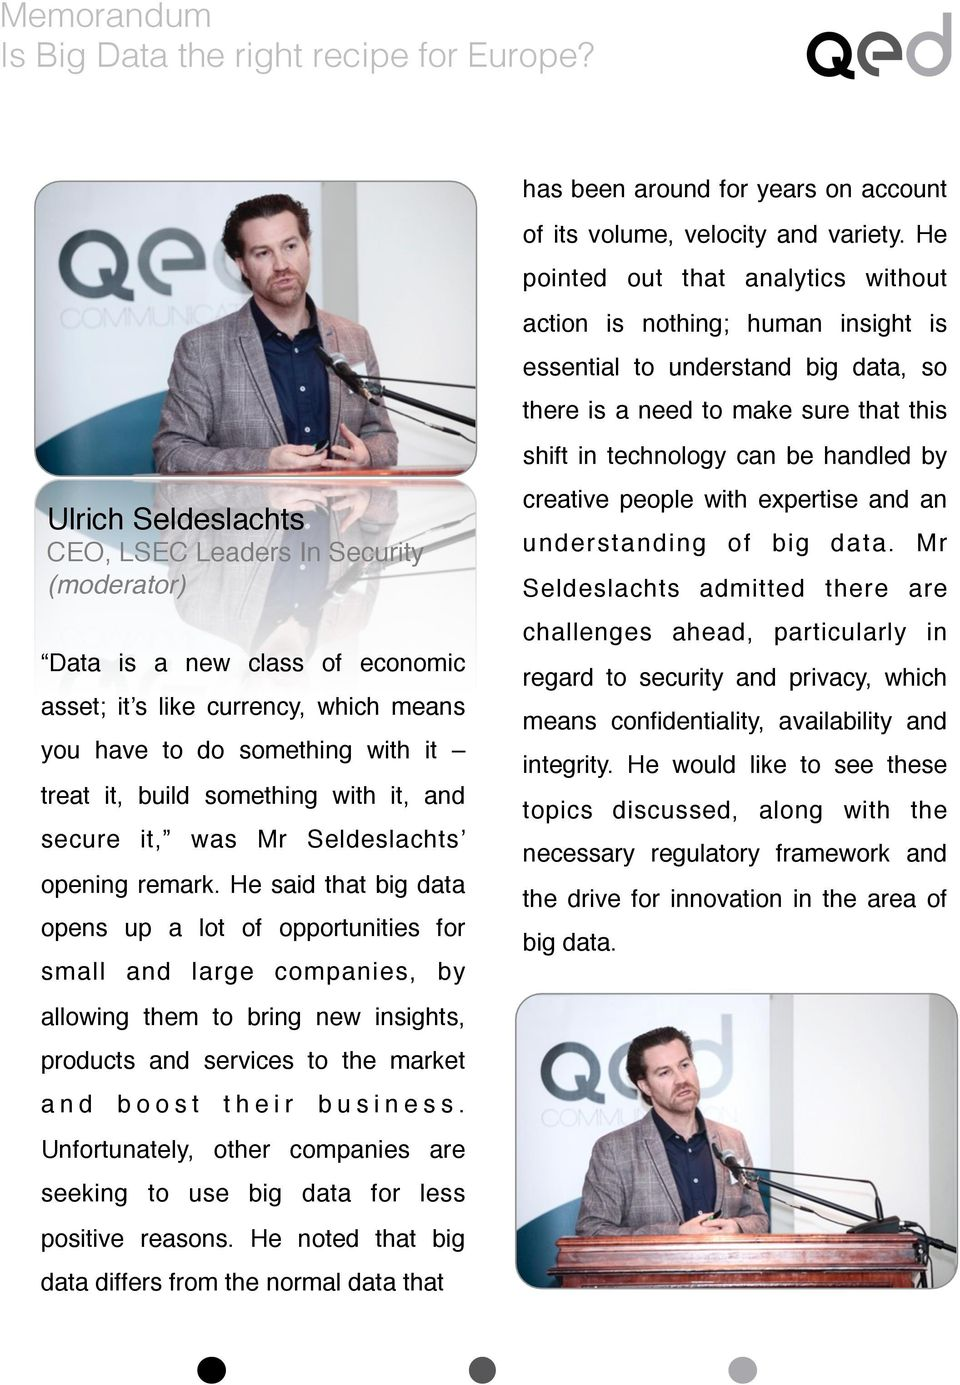 He said that big data opens up a lot of opportunities for small and large companies, by allowing them to bring new insights, products and services to the market and boost their business.